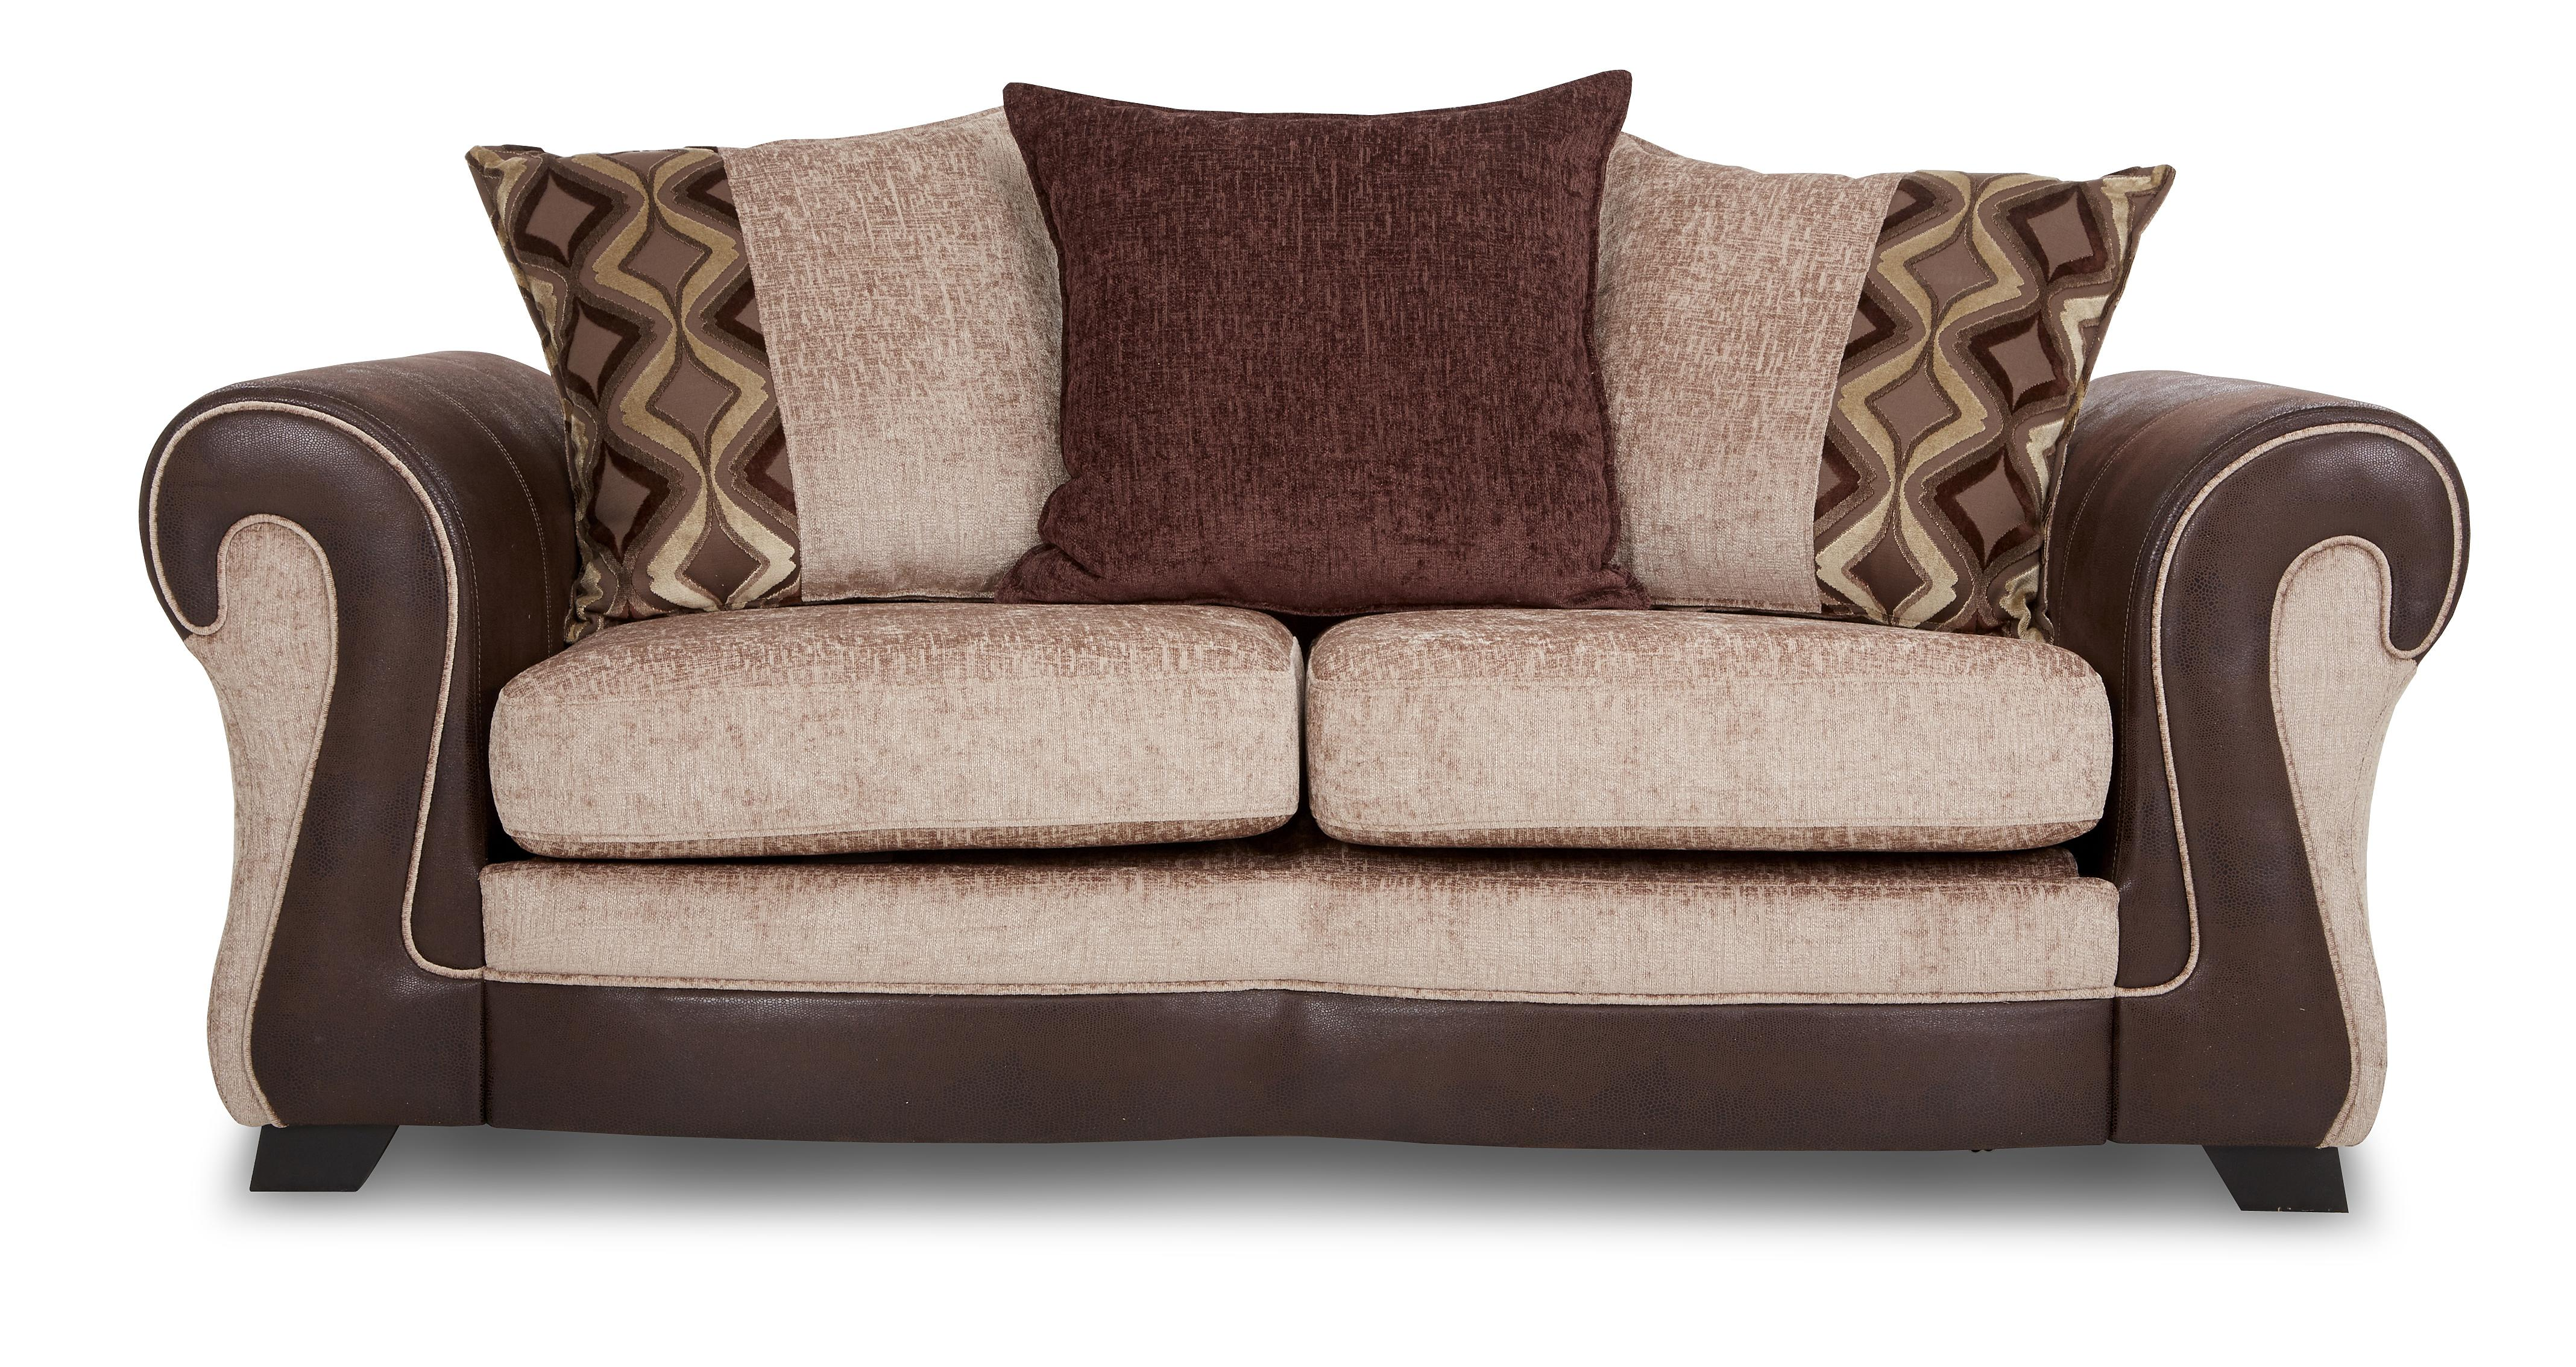 oversized pillows for sofa bassett hudson take advantage of couch bed read these 10 tips